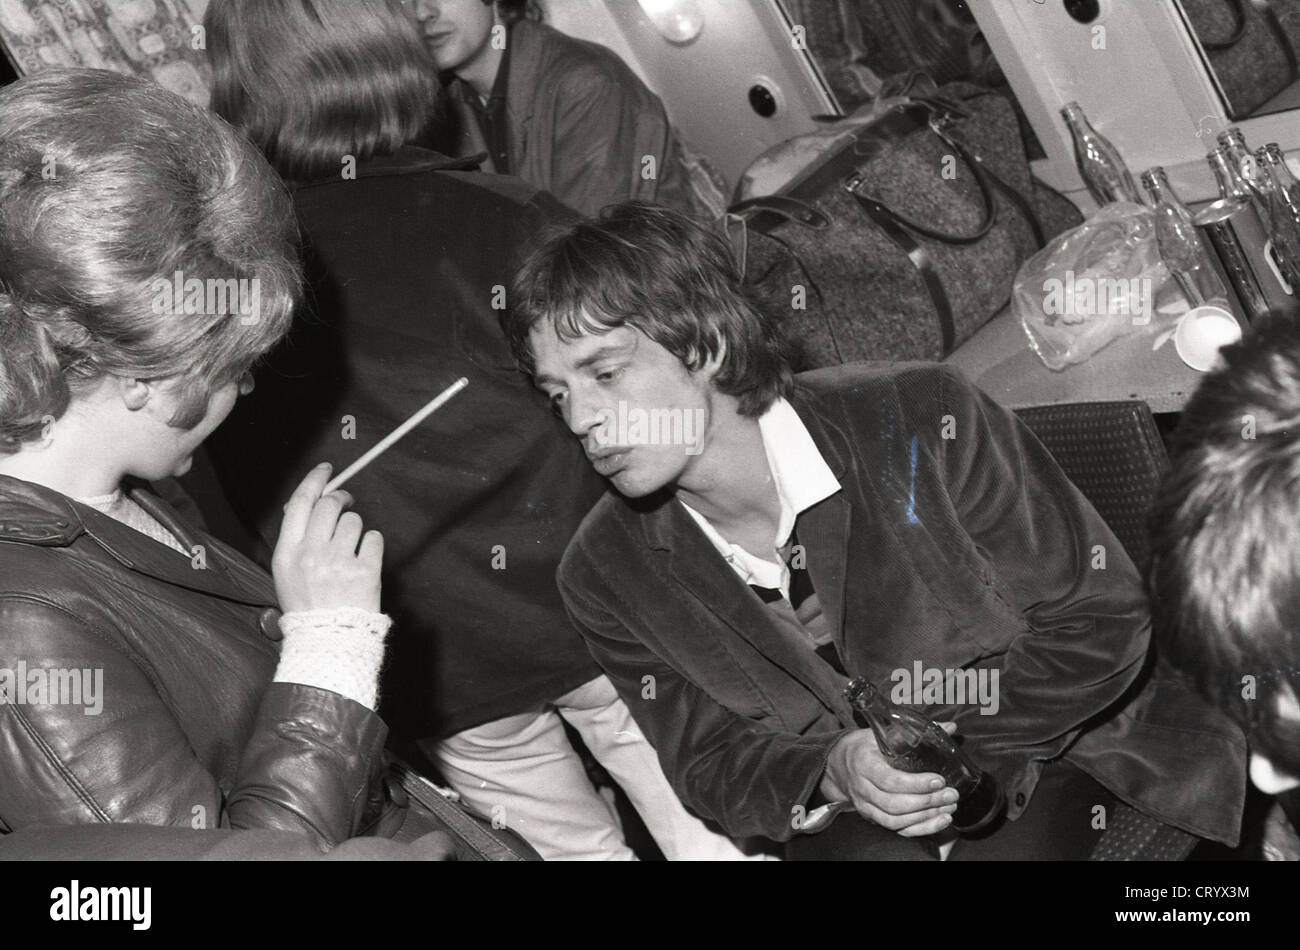 006905 - Mick Jagger of the Rolling Stones backstage at Ready Steady Go! in 1964 - Stock Image